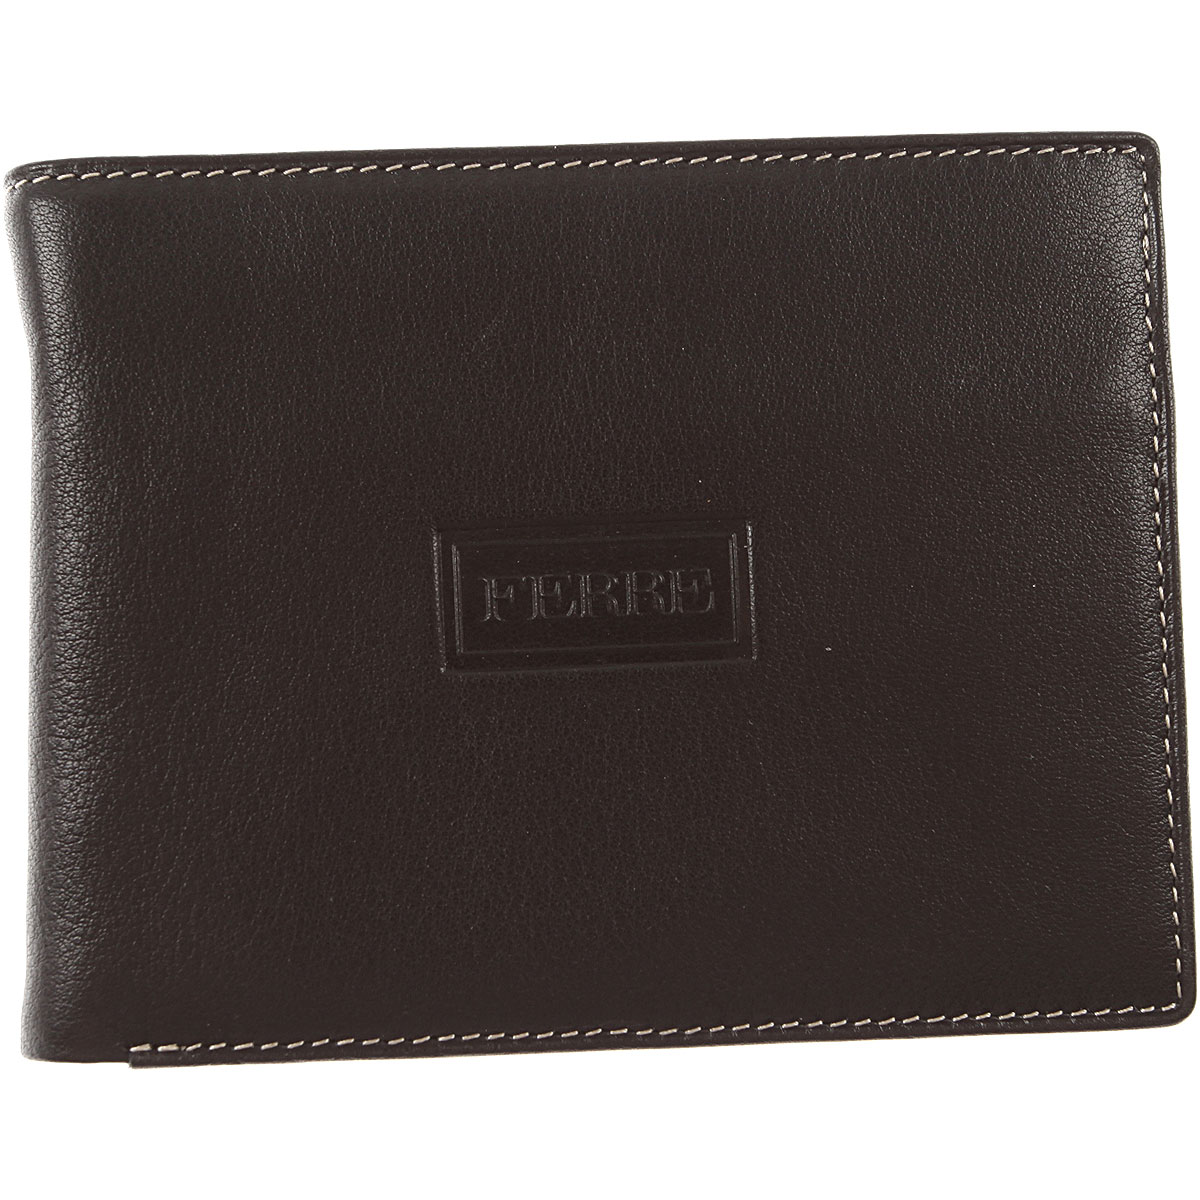 Gianfranco Ferre Wallet for Men in Outlet Black USA - GOOFASH